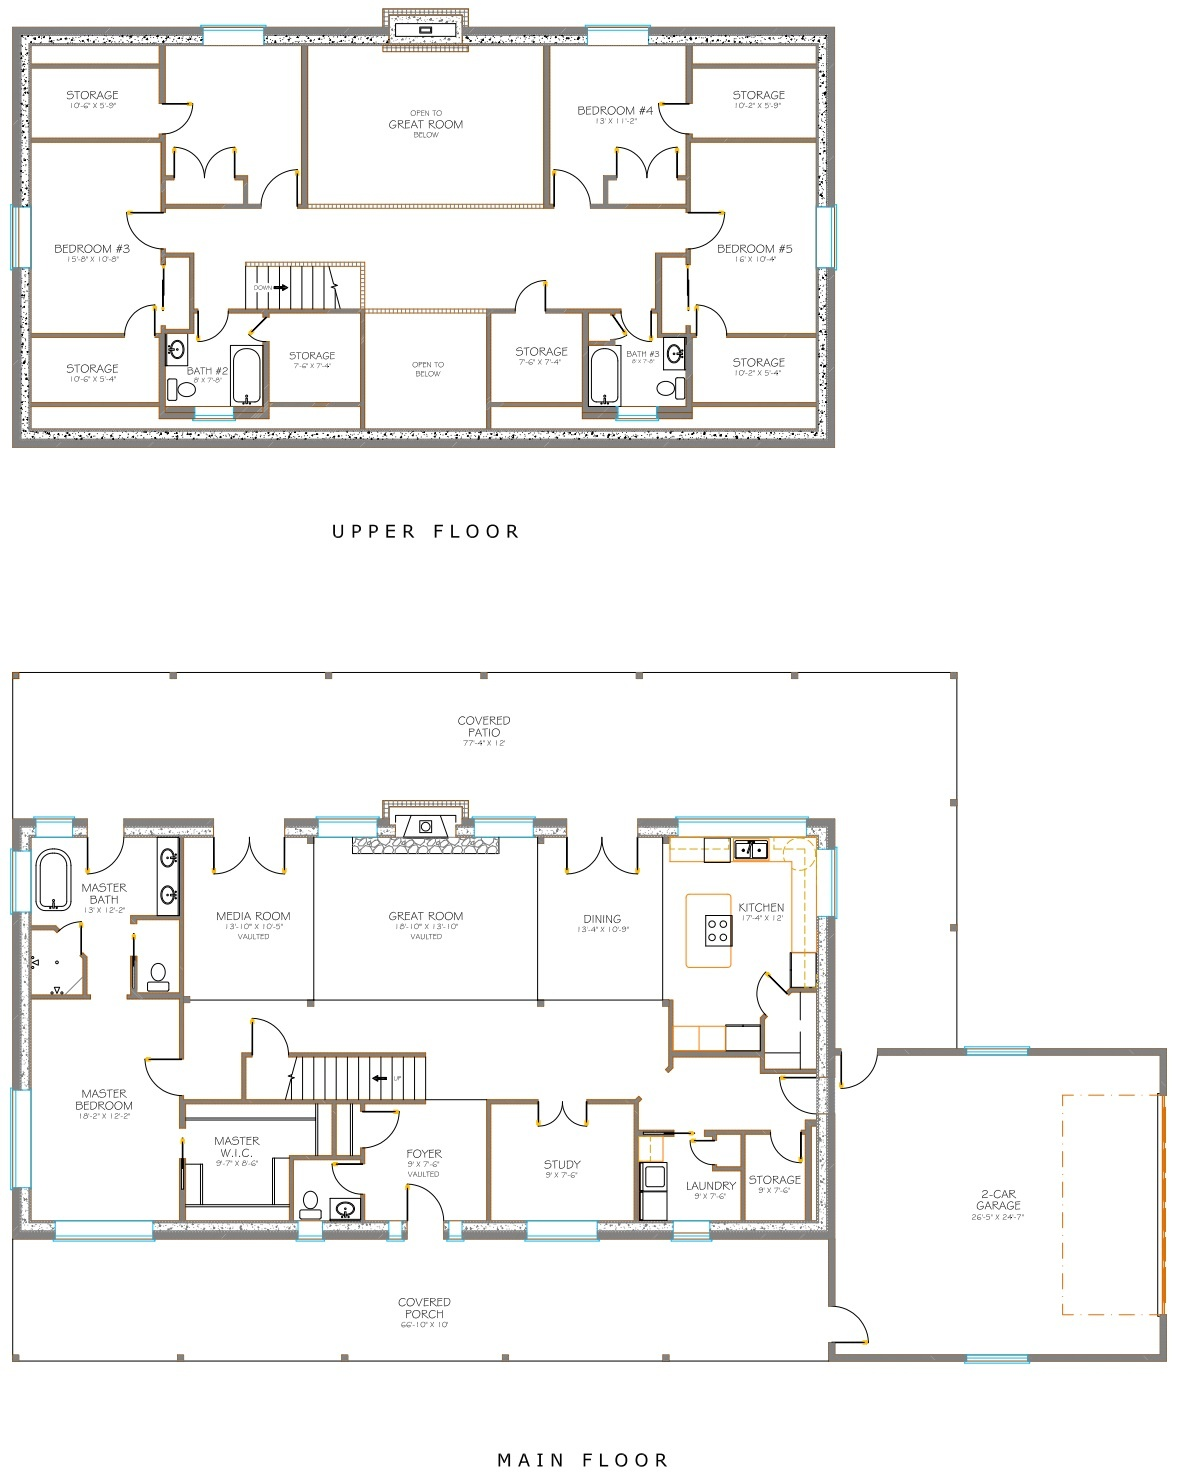 Custom built floor plan.